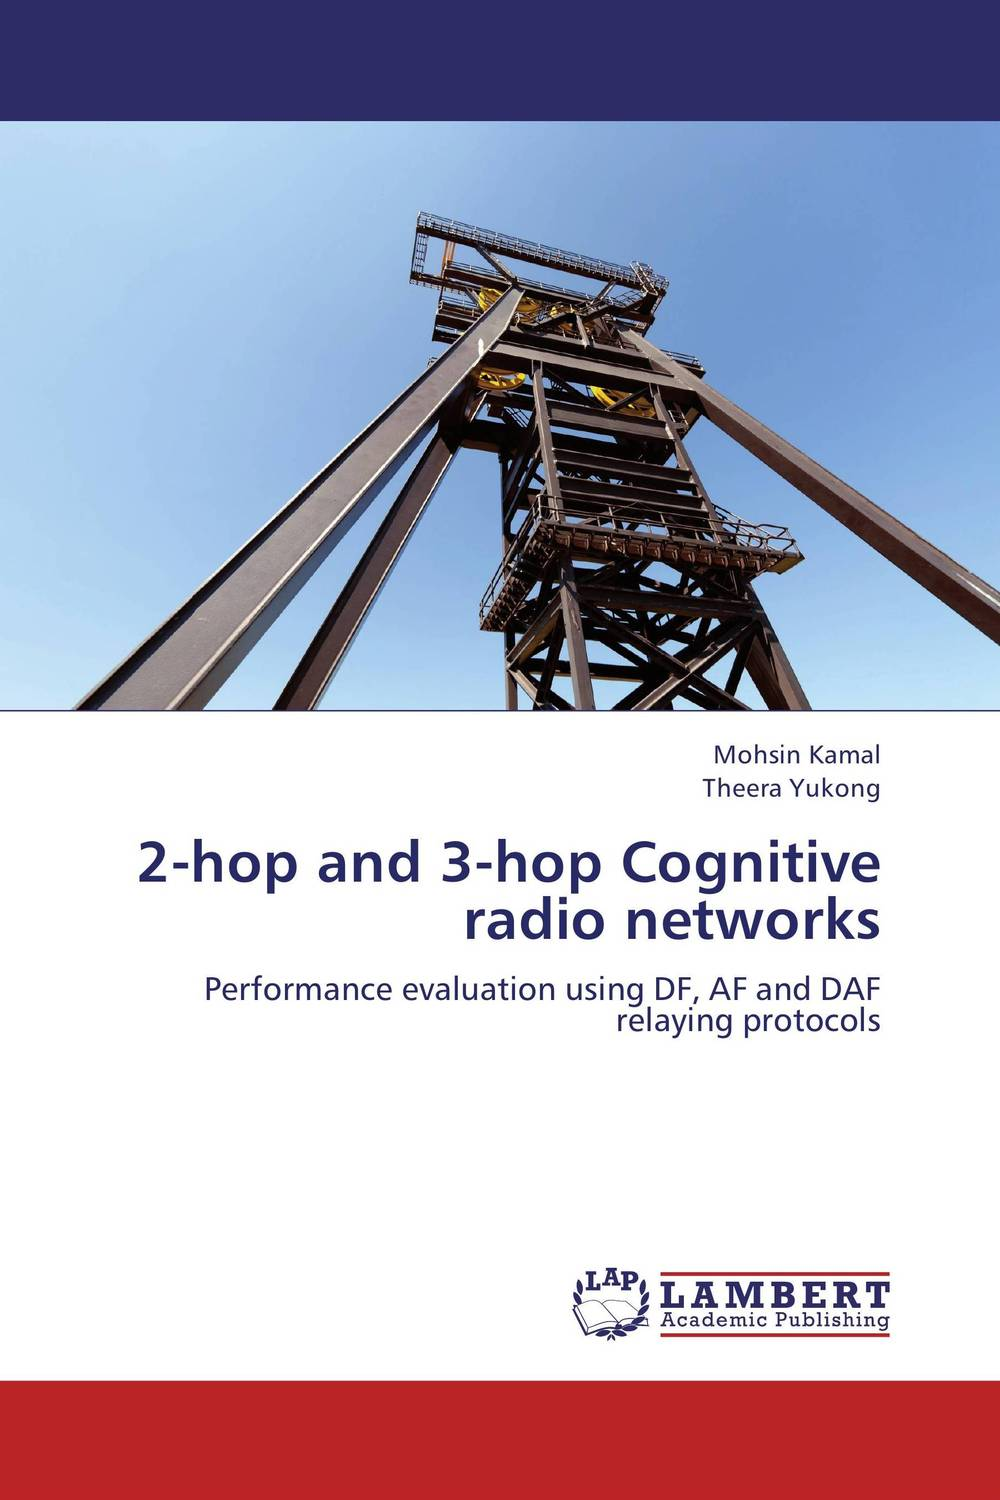 2-hop and 3-hop Cognitive radio networks planning and evaluates performance of radio network